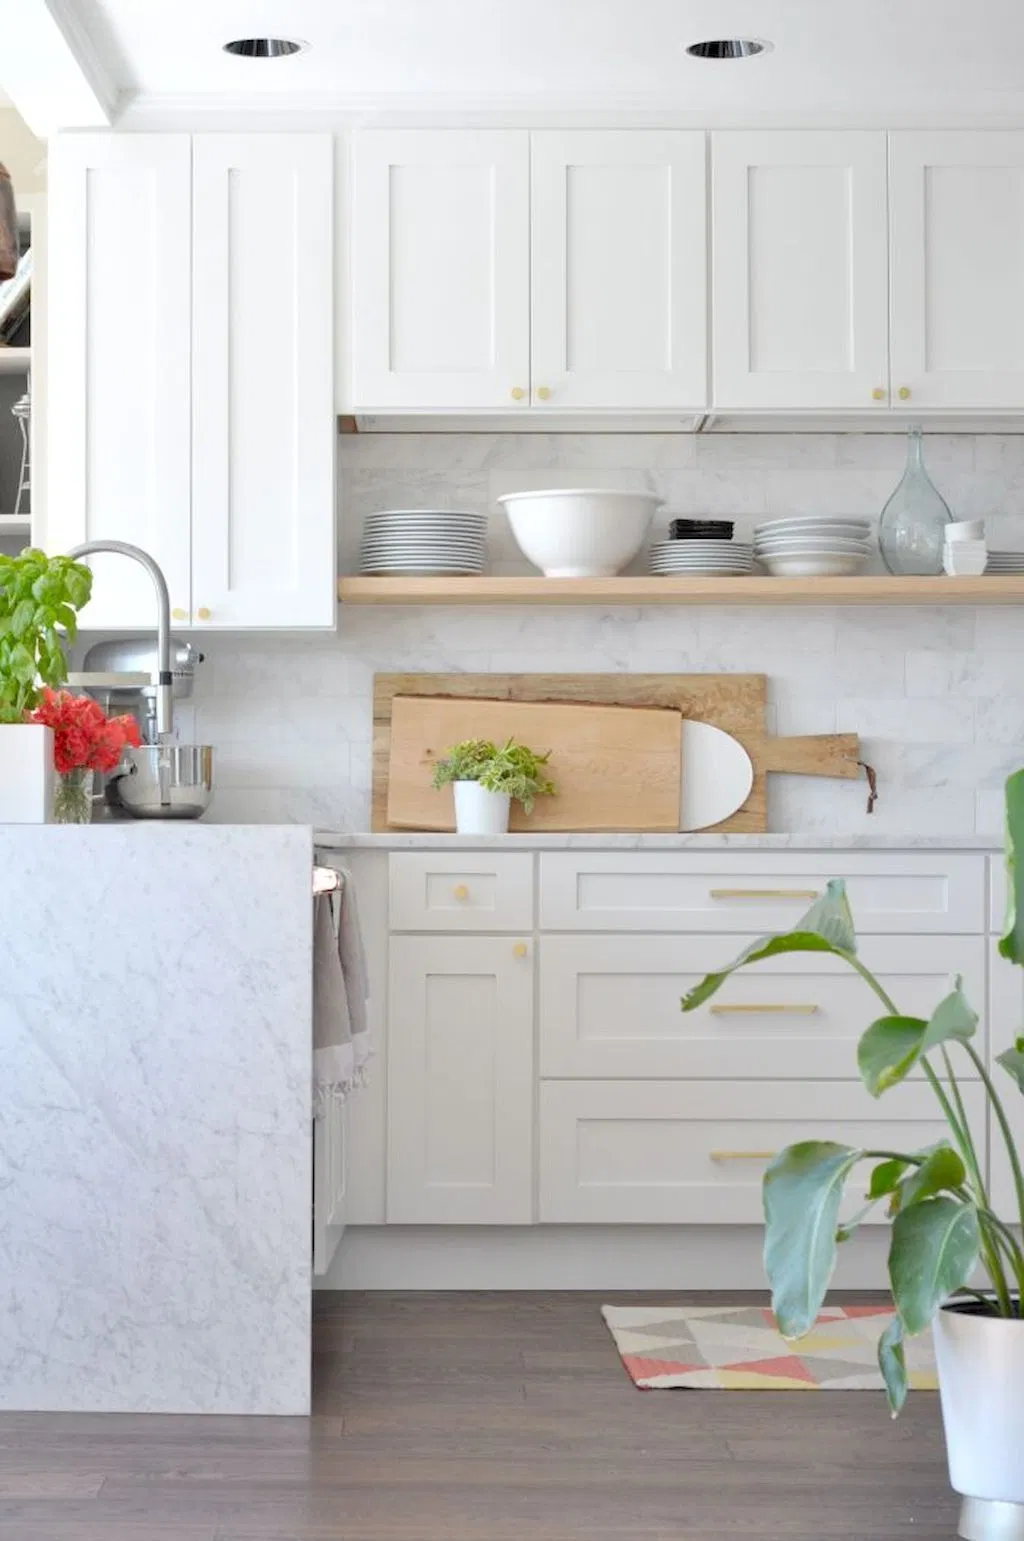 white shaker cabinets in a minimal modern kitchen with plant decor and white backsplash